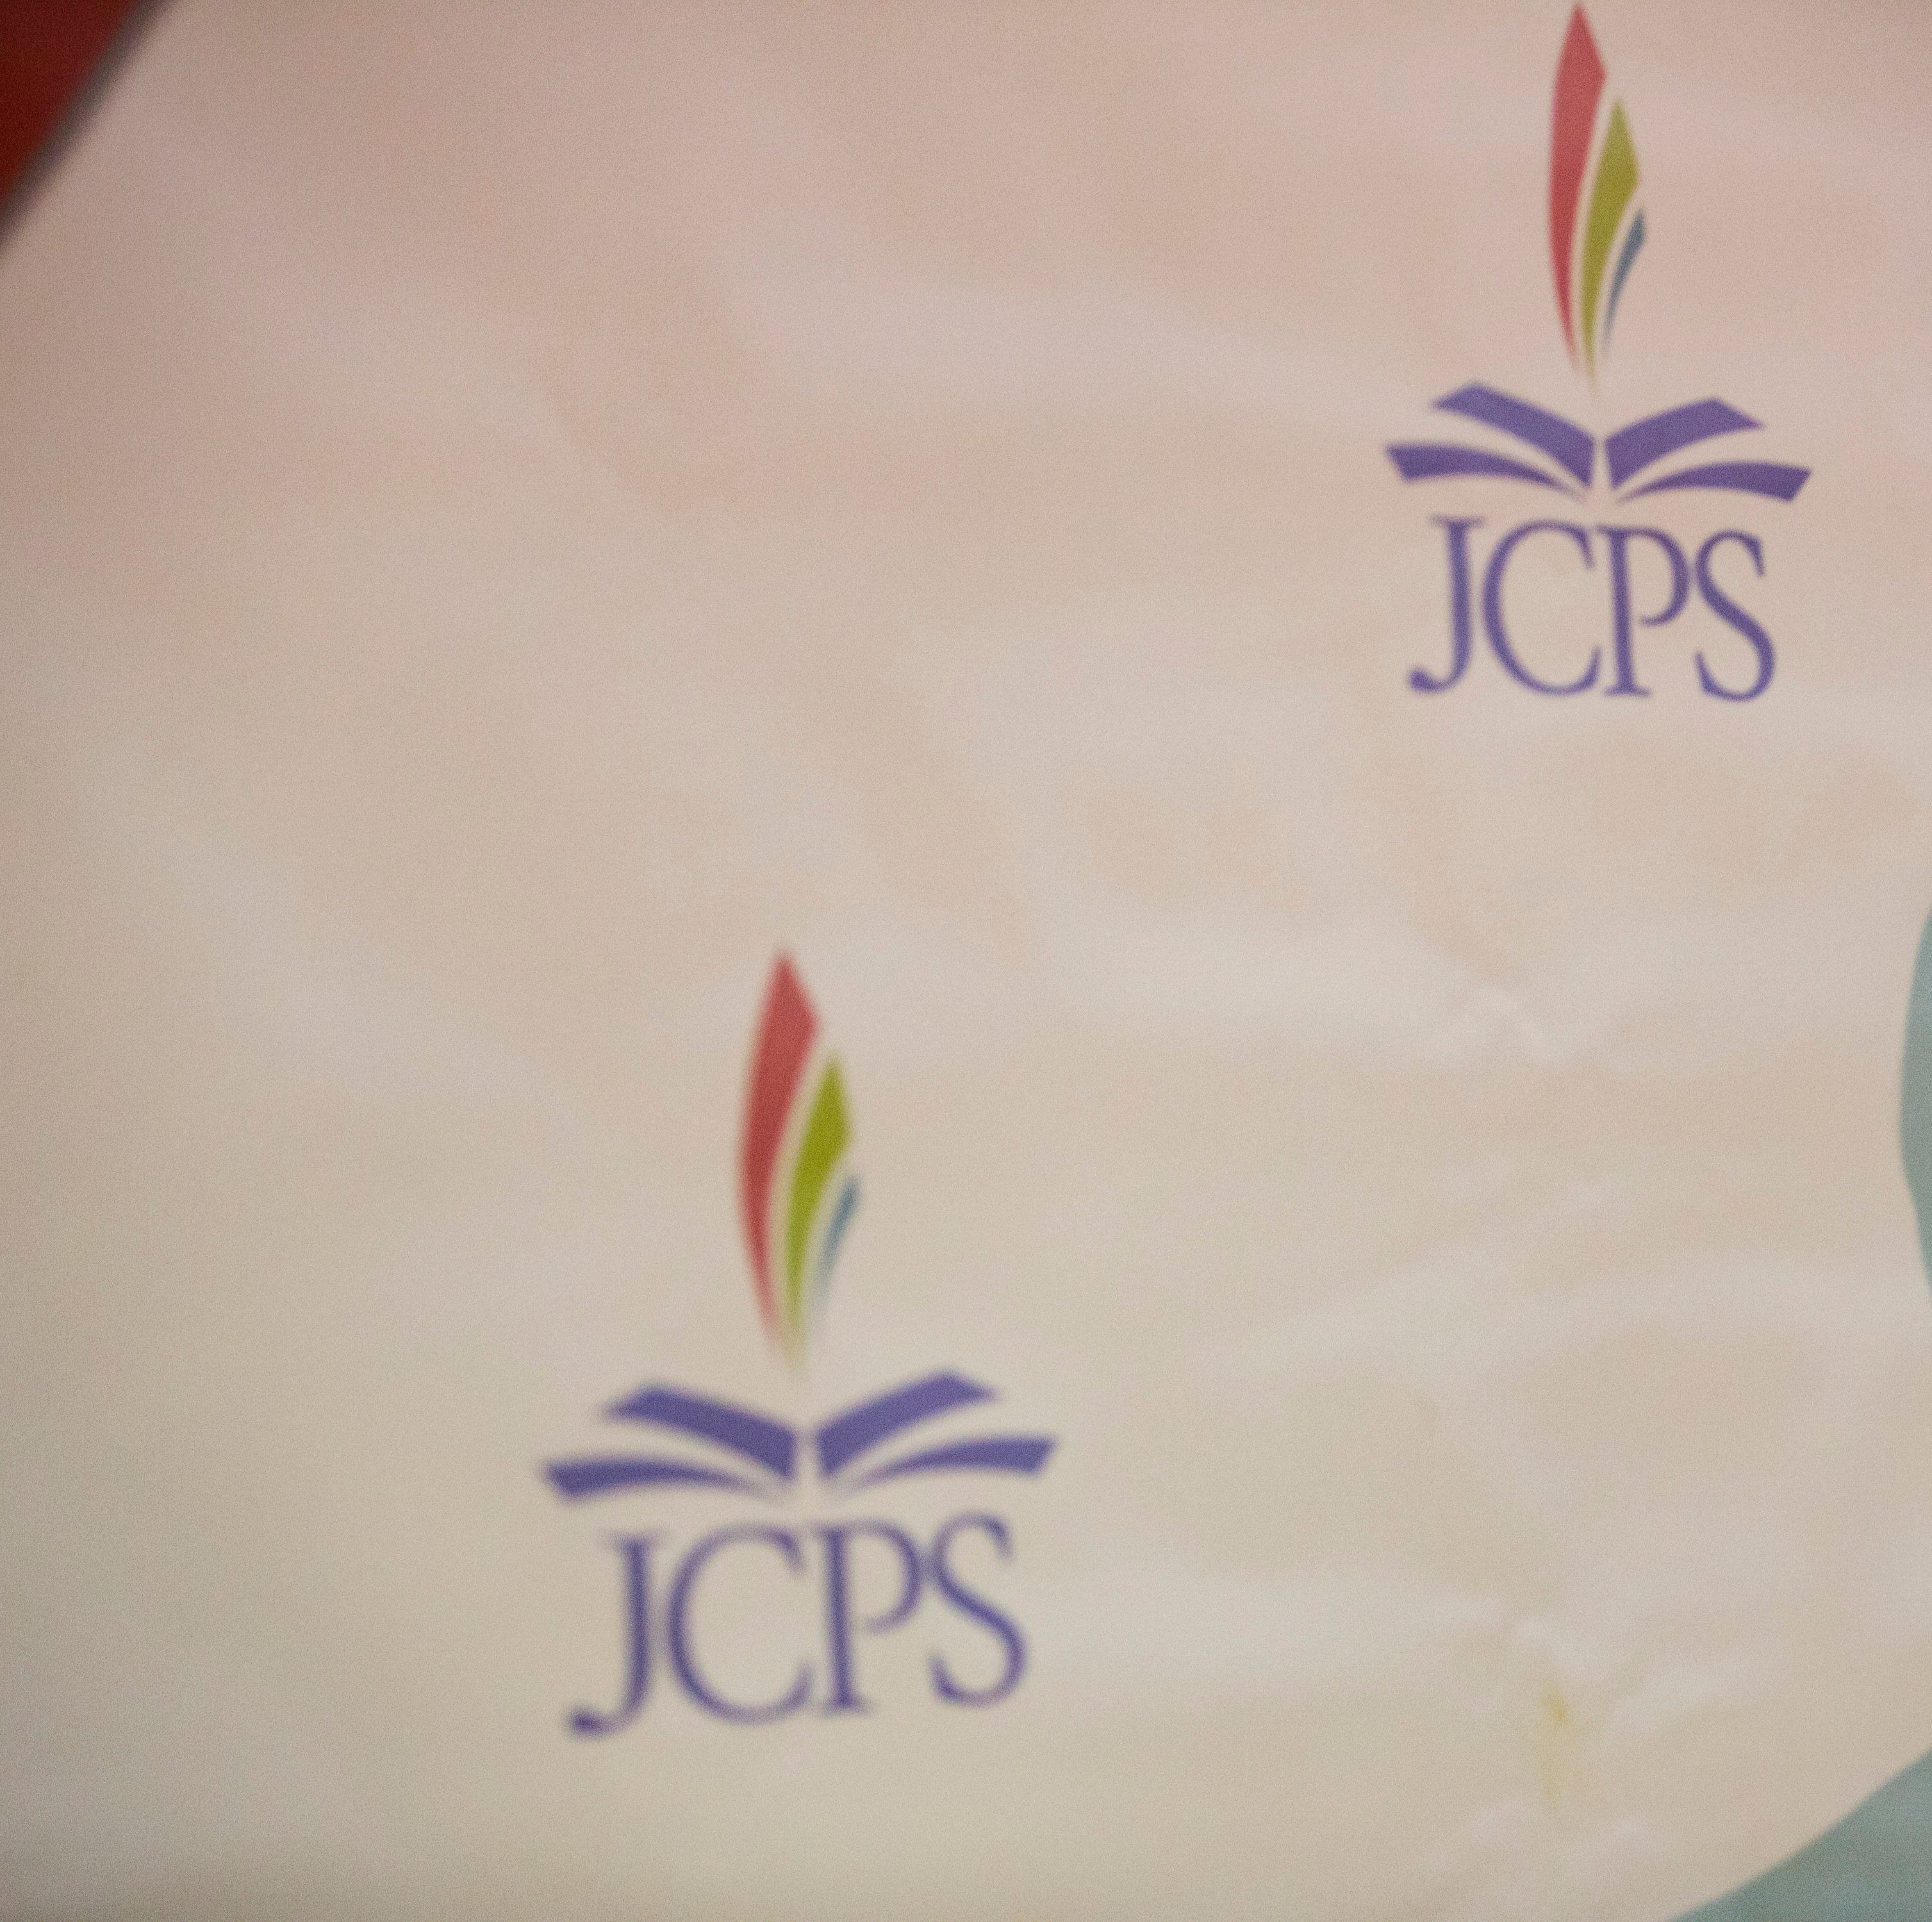 JCPS, Kentucky trade responses on offer to avoid takeover of district